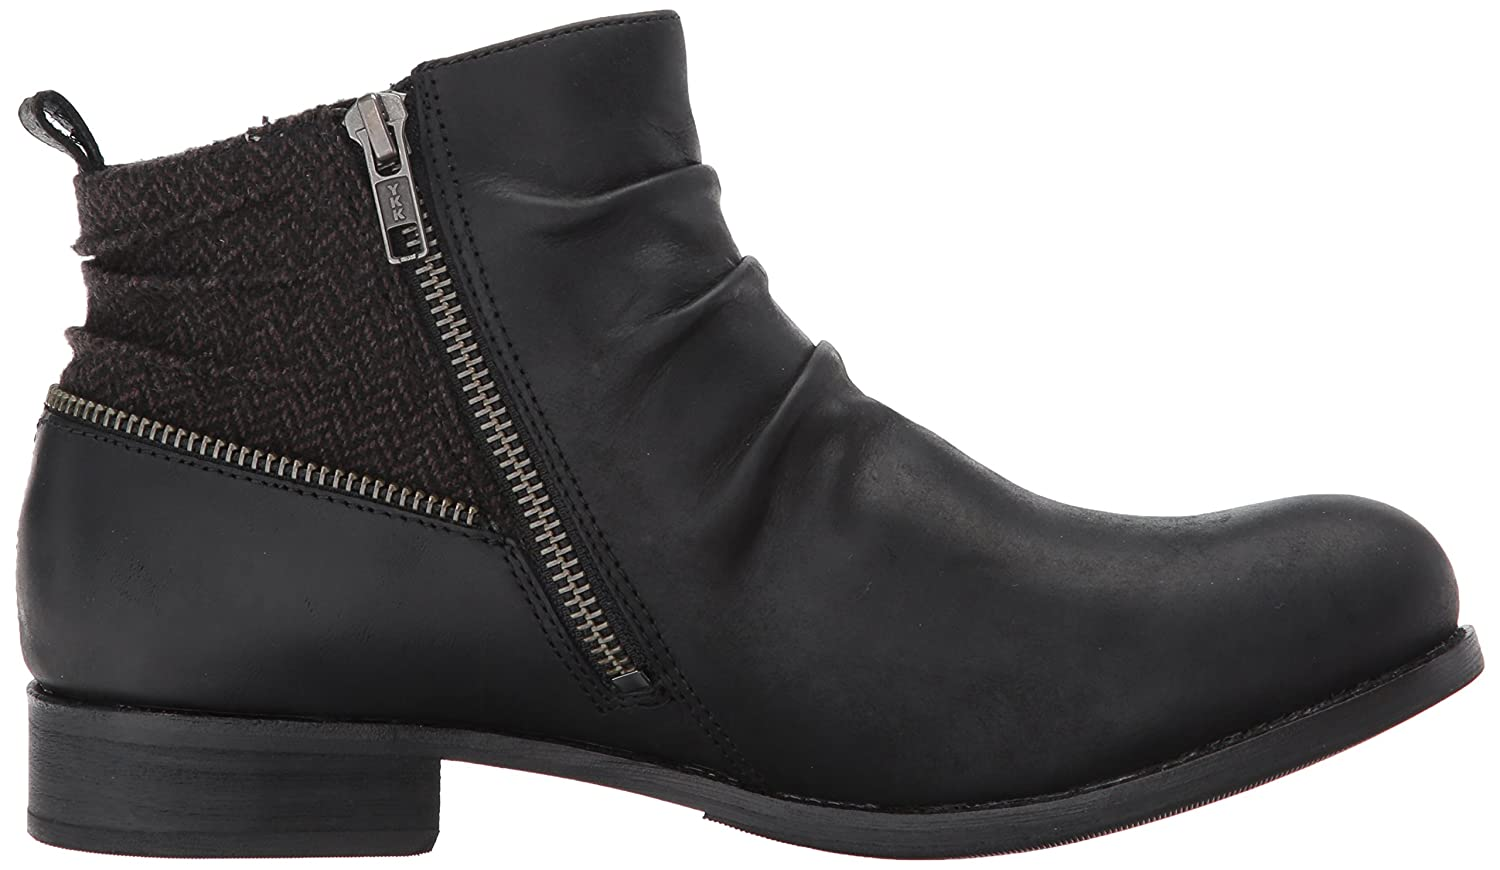 Caterpillar Women's Kiley Pleated Leather Bootie with Tweed Accents Ankle Boot B01NCKZ3ZN 8 B(M) US|Black Tweed